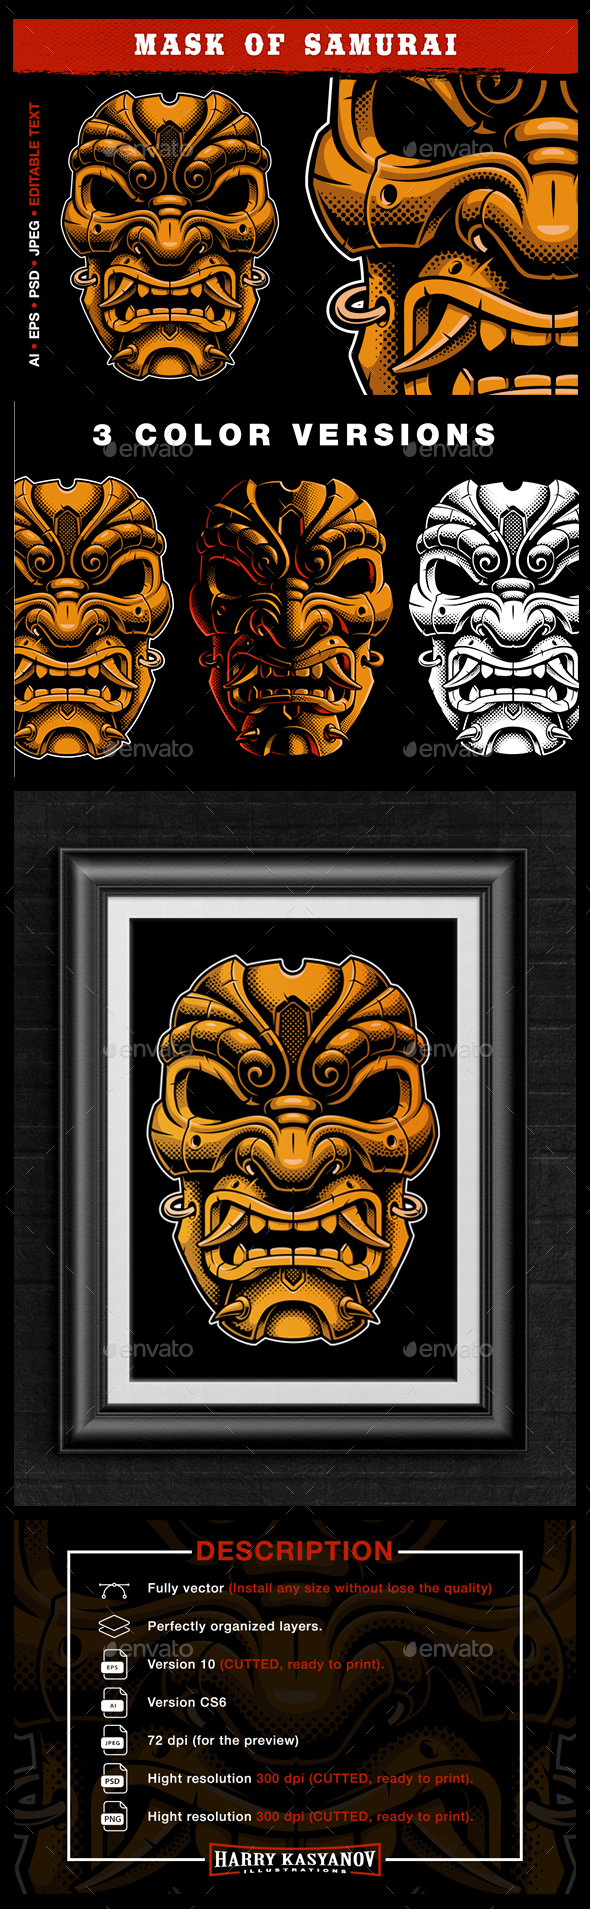 Samurai Mask Vector - Miscellaneous Characters